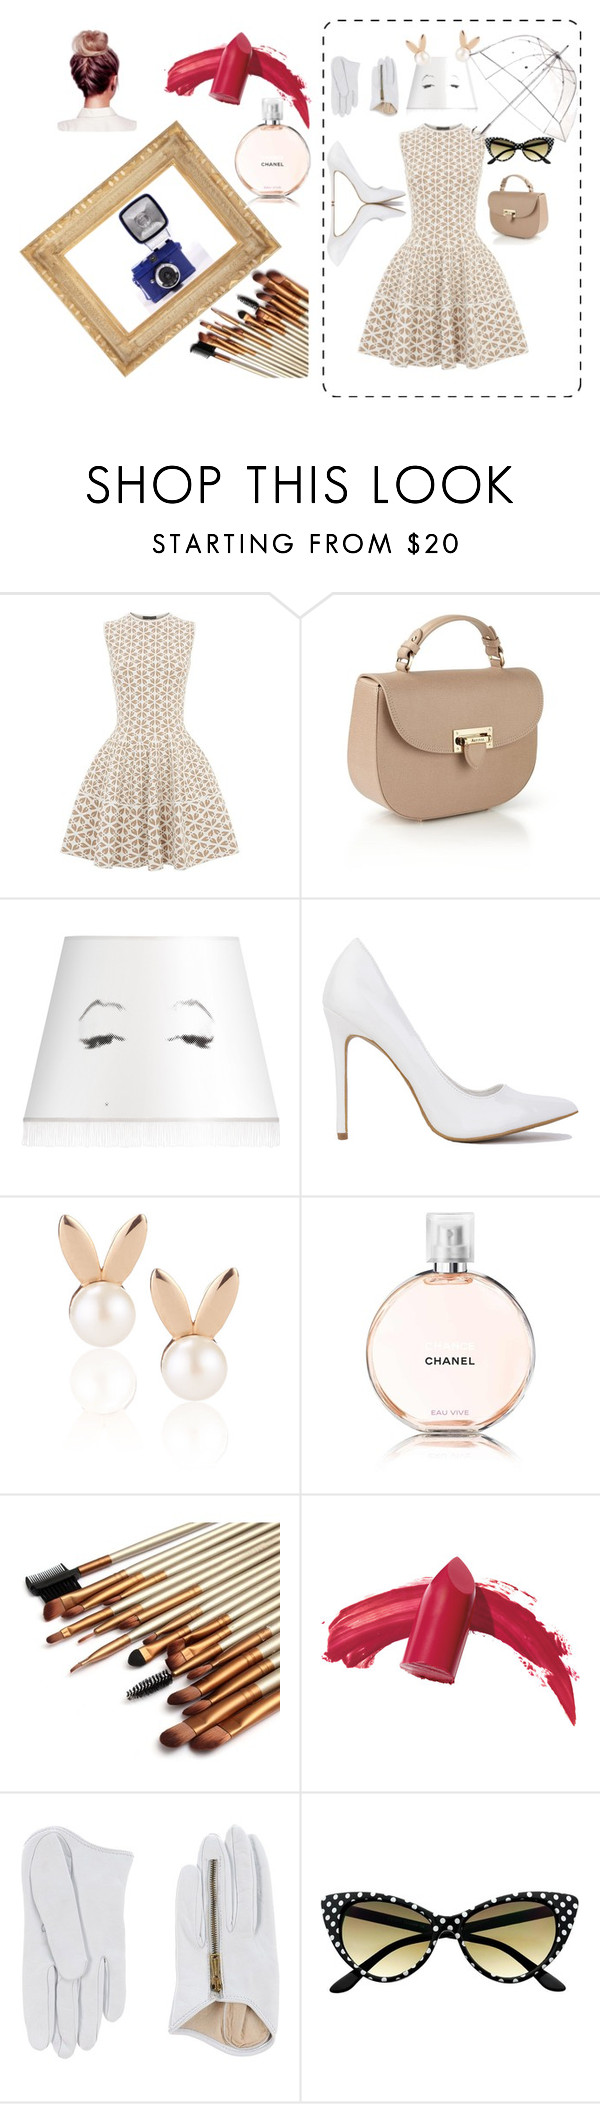 """""""retro style"""" by explorer-14041275712 on Polyvore featuring Alexander McQueen, Aspinal of London, Mineheart, Aamaya by priyanka, Chanel, Elizabeth Arden, Dsquared2 and Totes"""